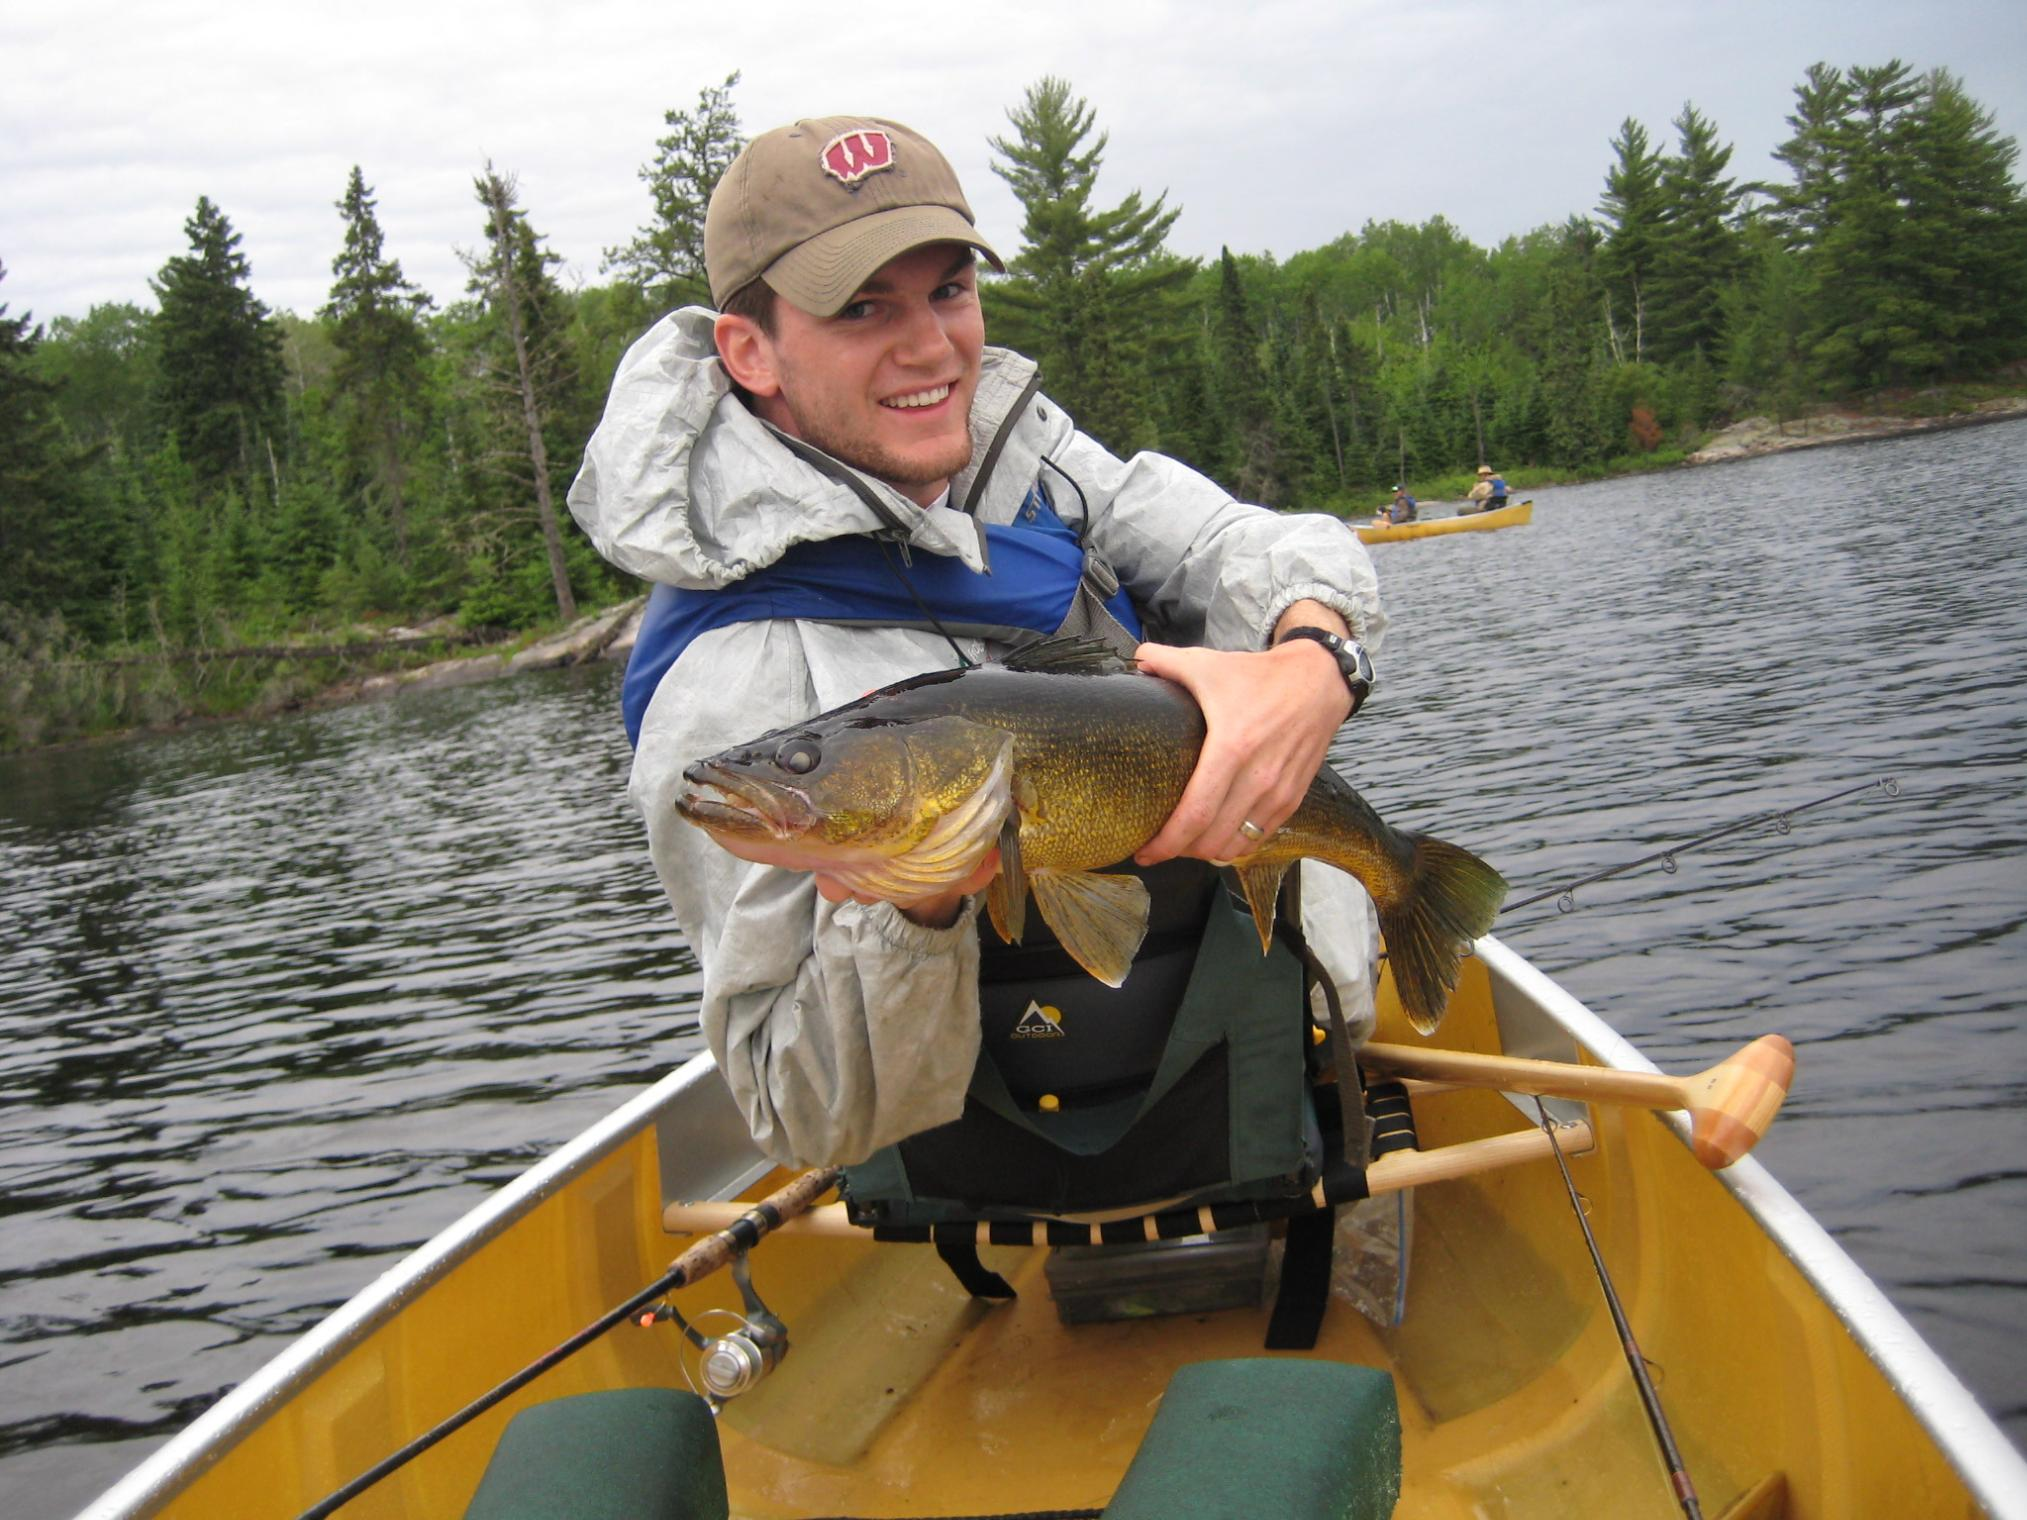 Bwca 2010 presentation for bwca walleyes boundary waters for Boundary waters fishing